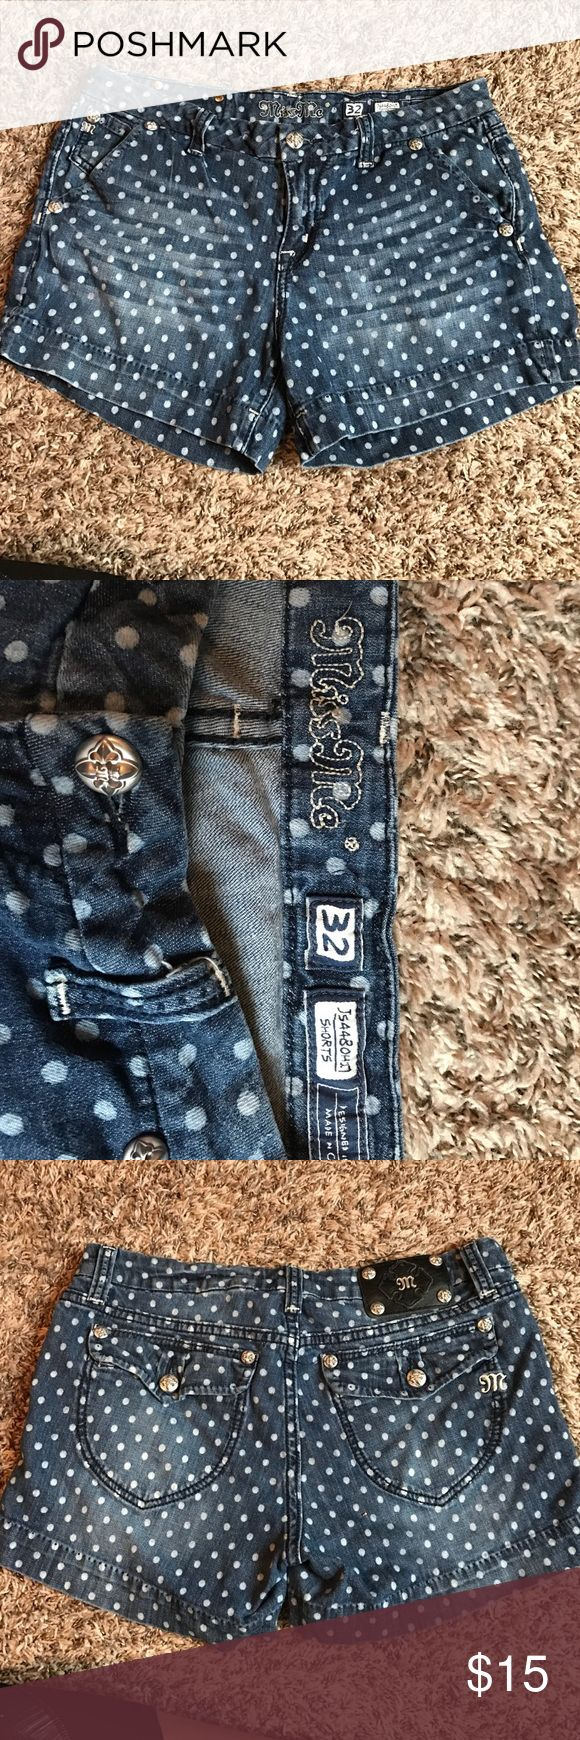 Miss Me Polka Dotted Shorts Miss Me Polka Dotted Jean Shorts. Worn a few times. Great condition. No stains or tears. Miss Me Shorts Jean Shorts